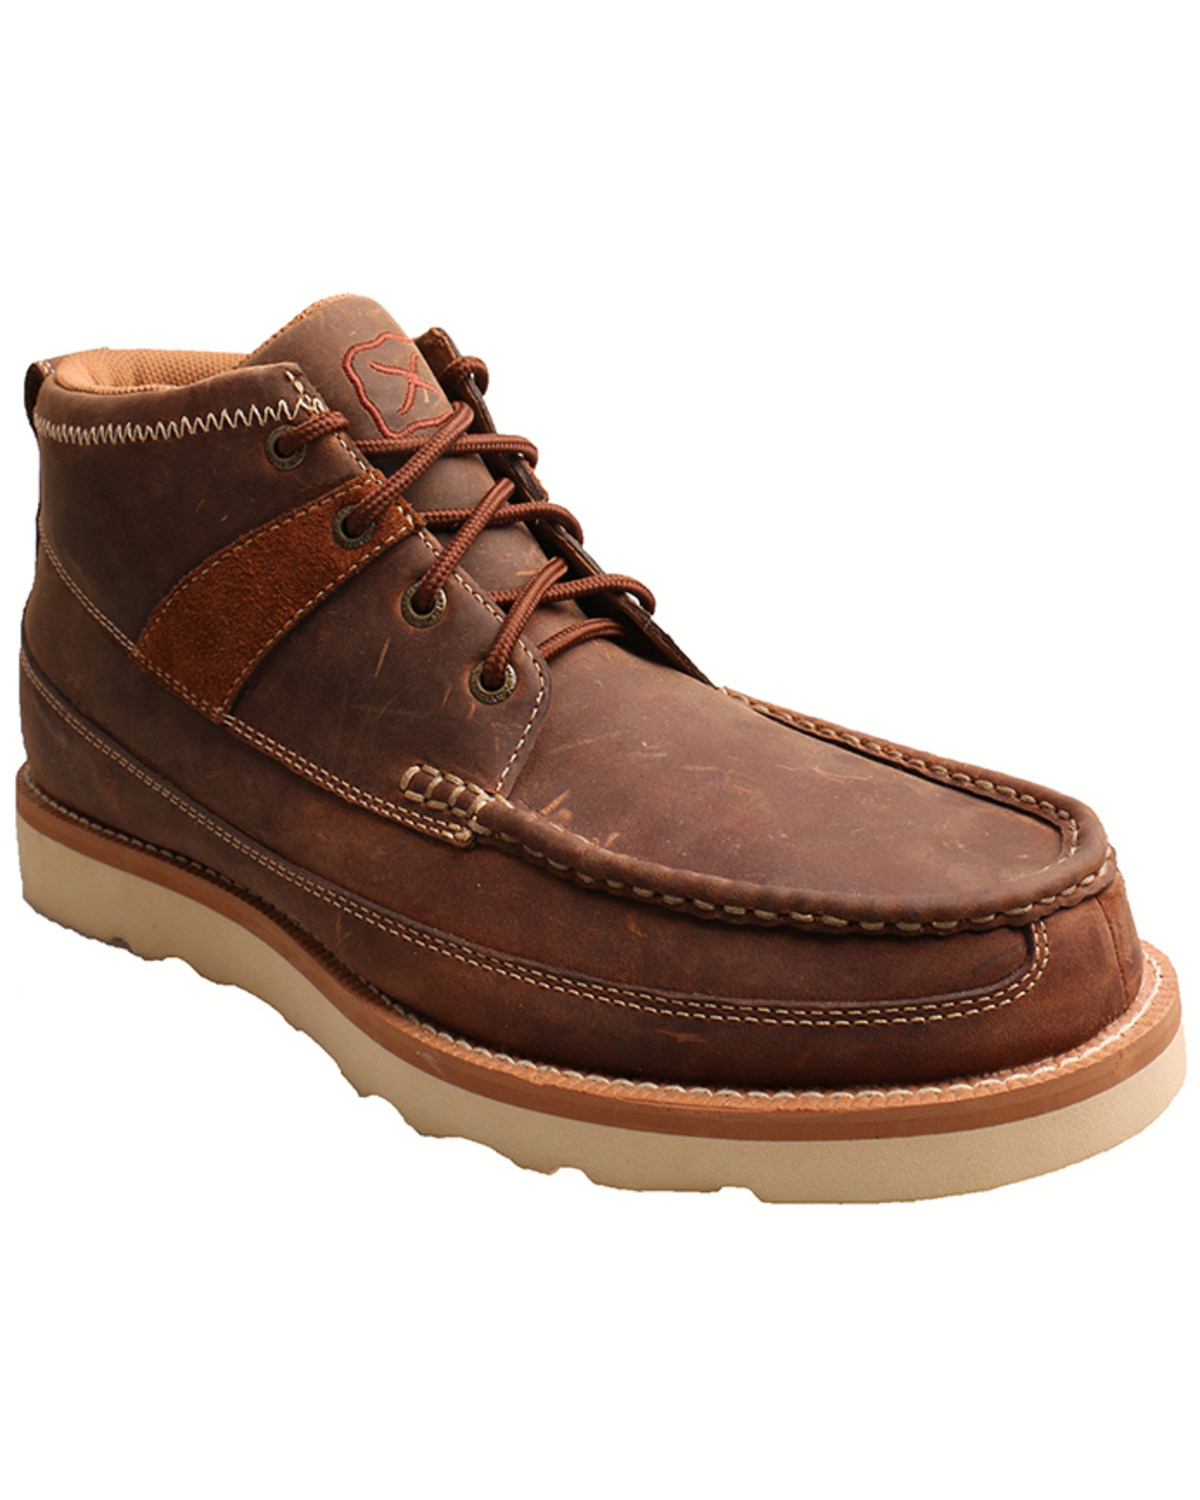 Shop Rogan's Shoes for the top name brands in shoes and footwear for the entire family.